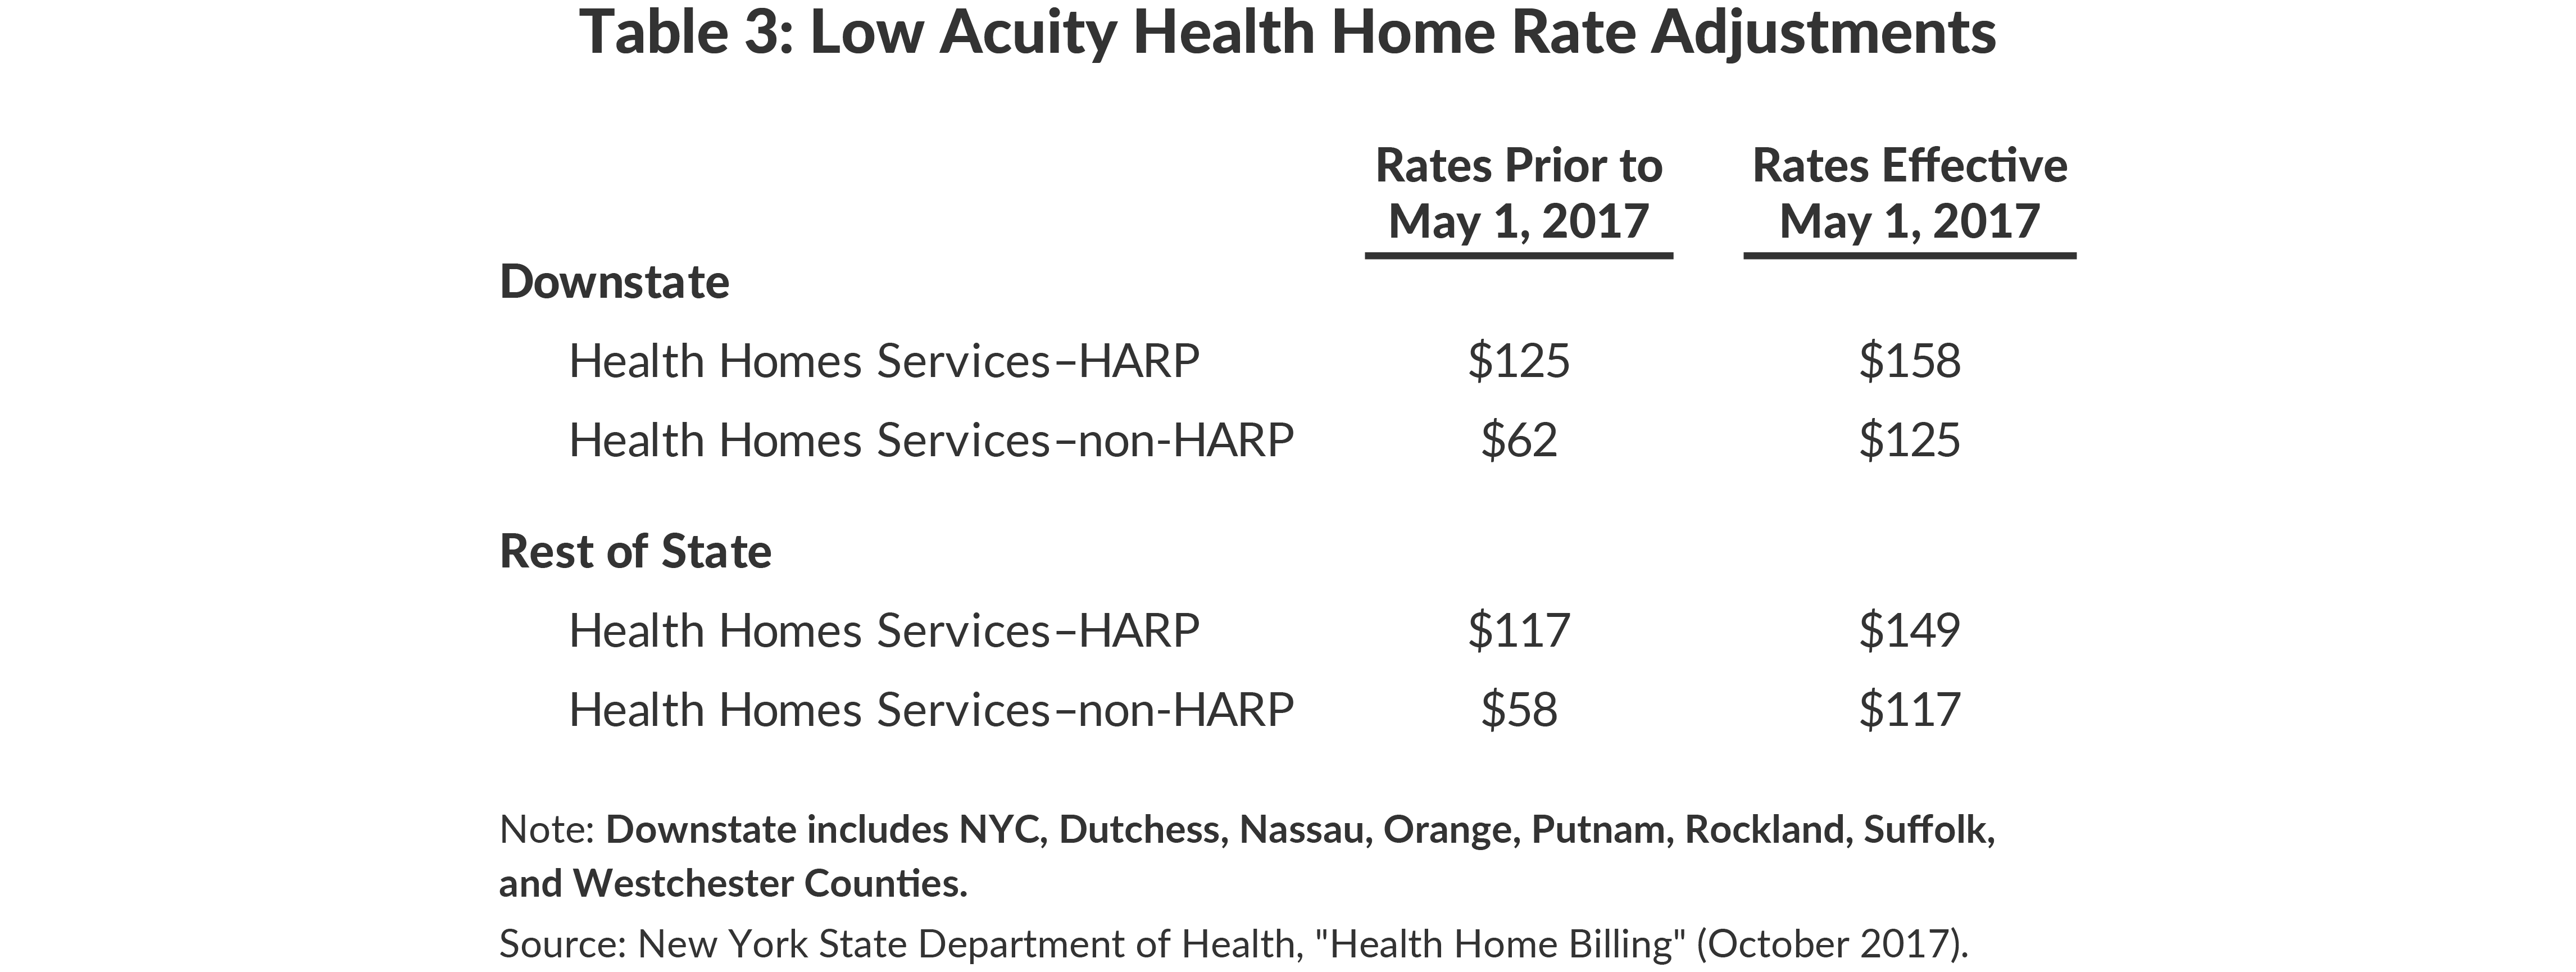 Table 3: Low Acuity Health Home Rate Adjustments